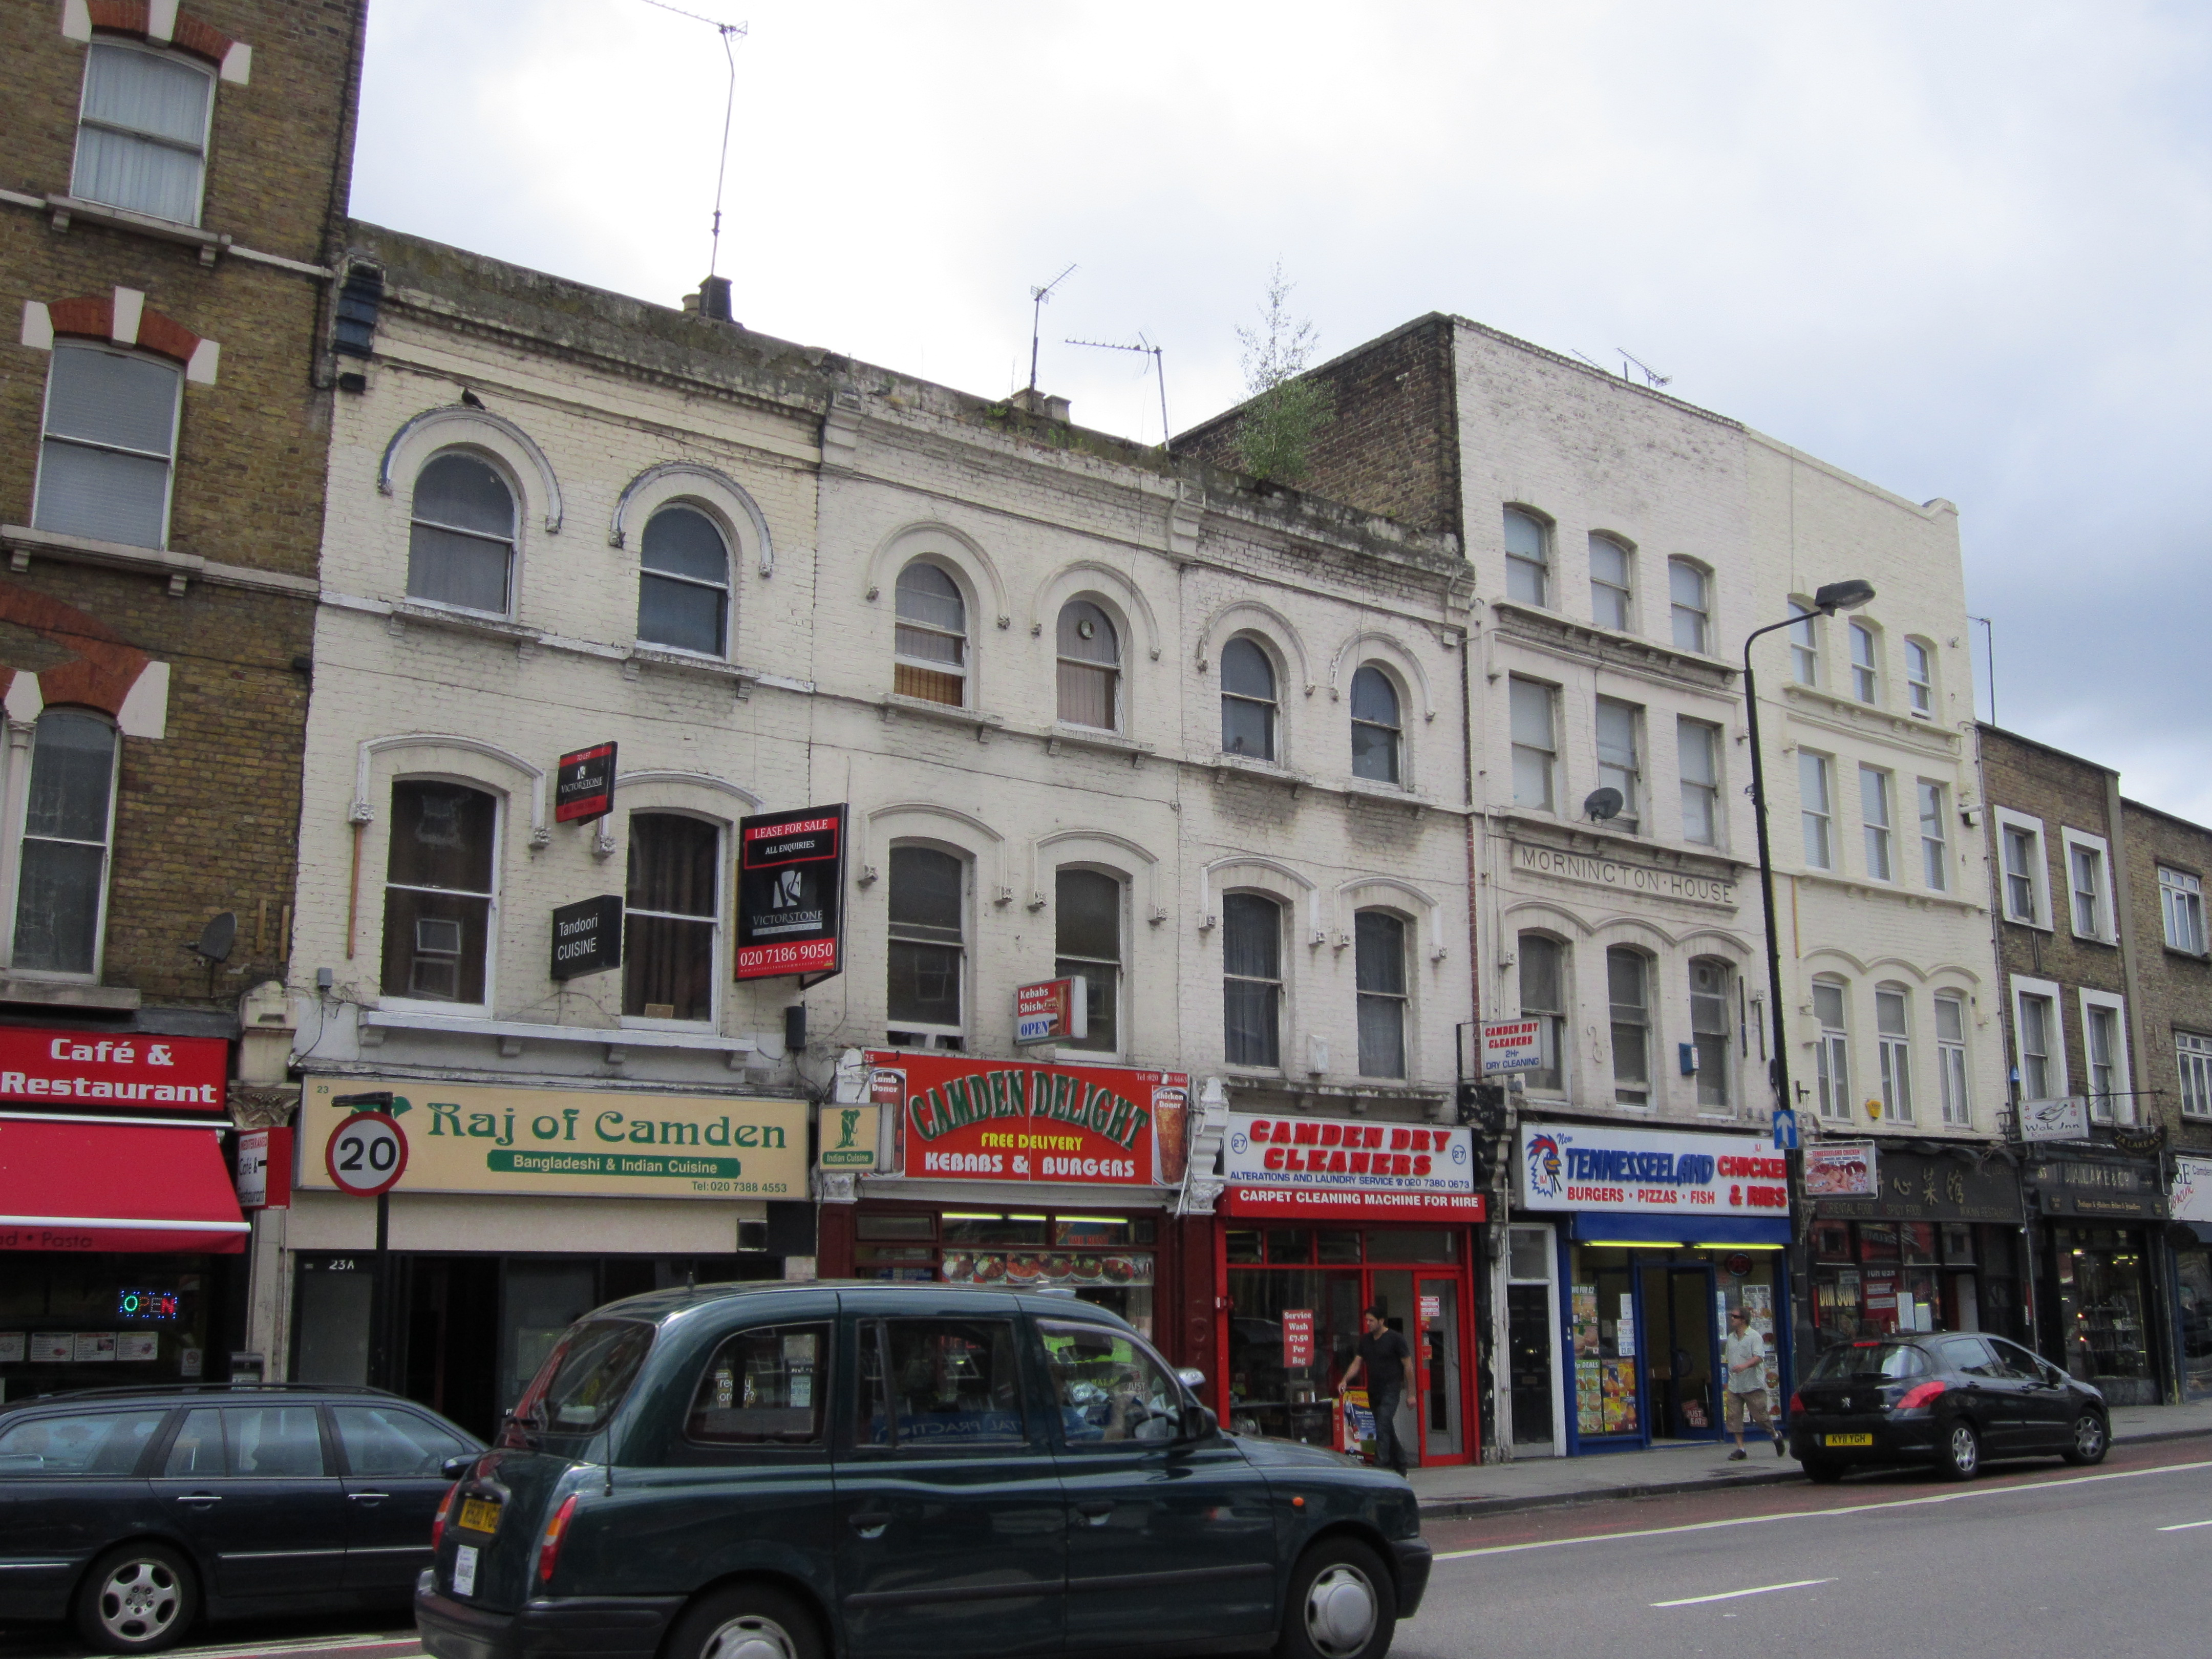 thesis shop camden street 7 reviews of the thesis centre when you've invested so much effort into writing  a thesis you want it look good well, with the thesis center on hand this isn't a.